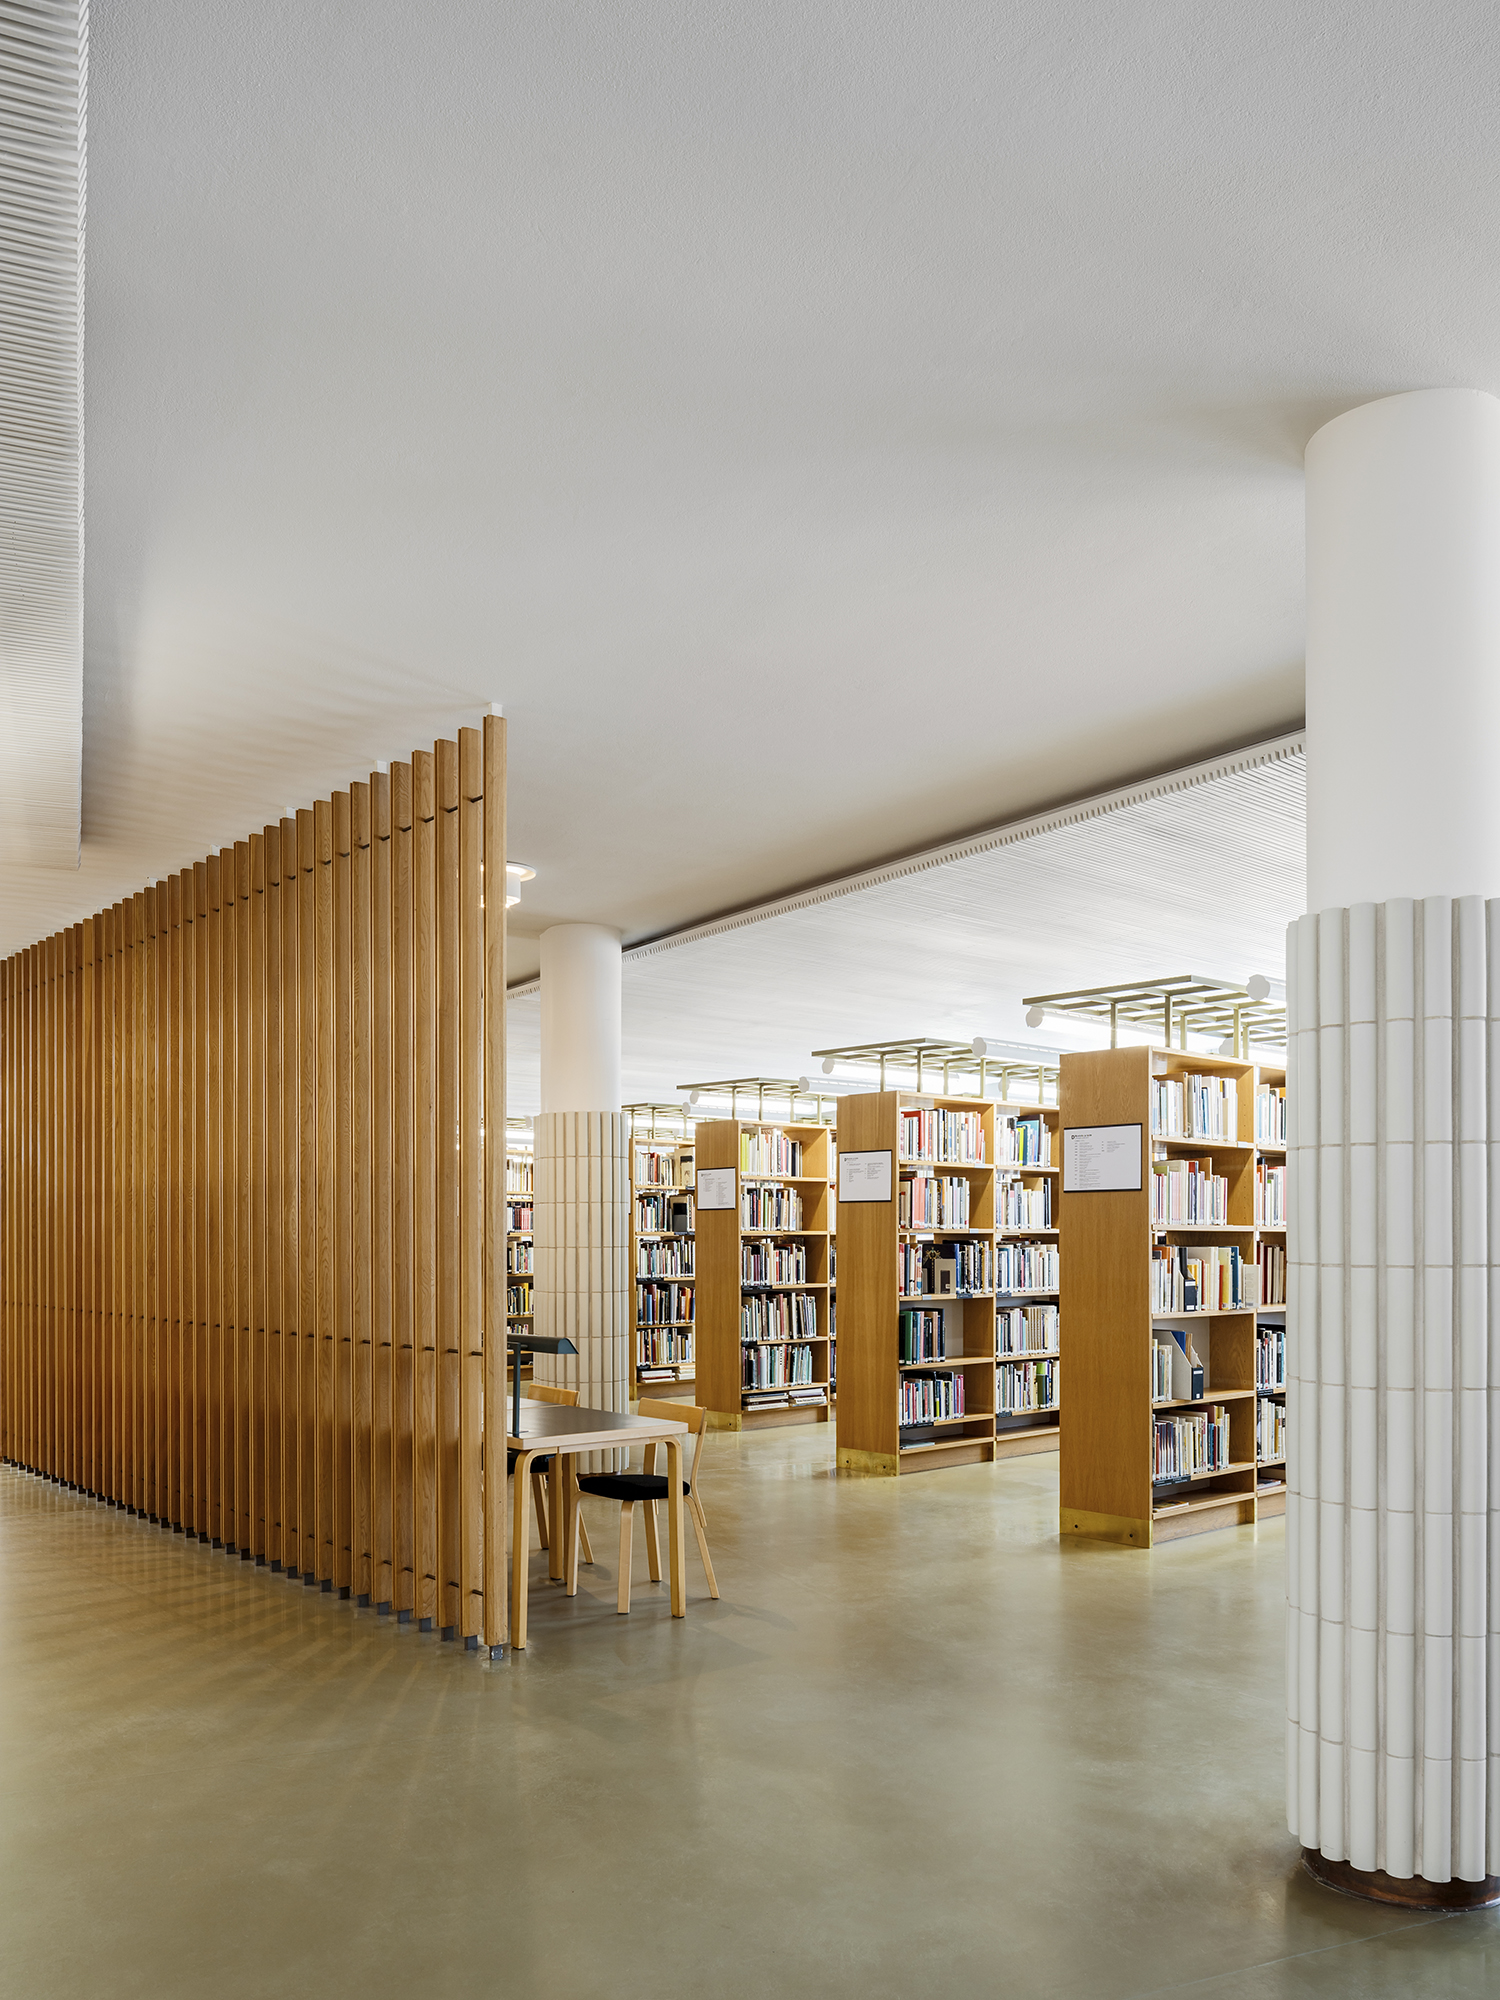 Learn more about Otaniemi campus and its history - Click here for more information!